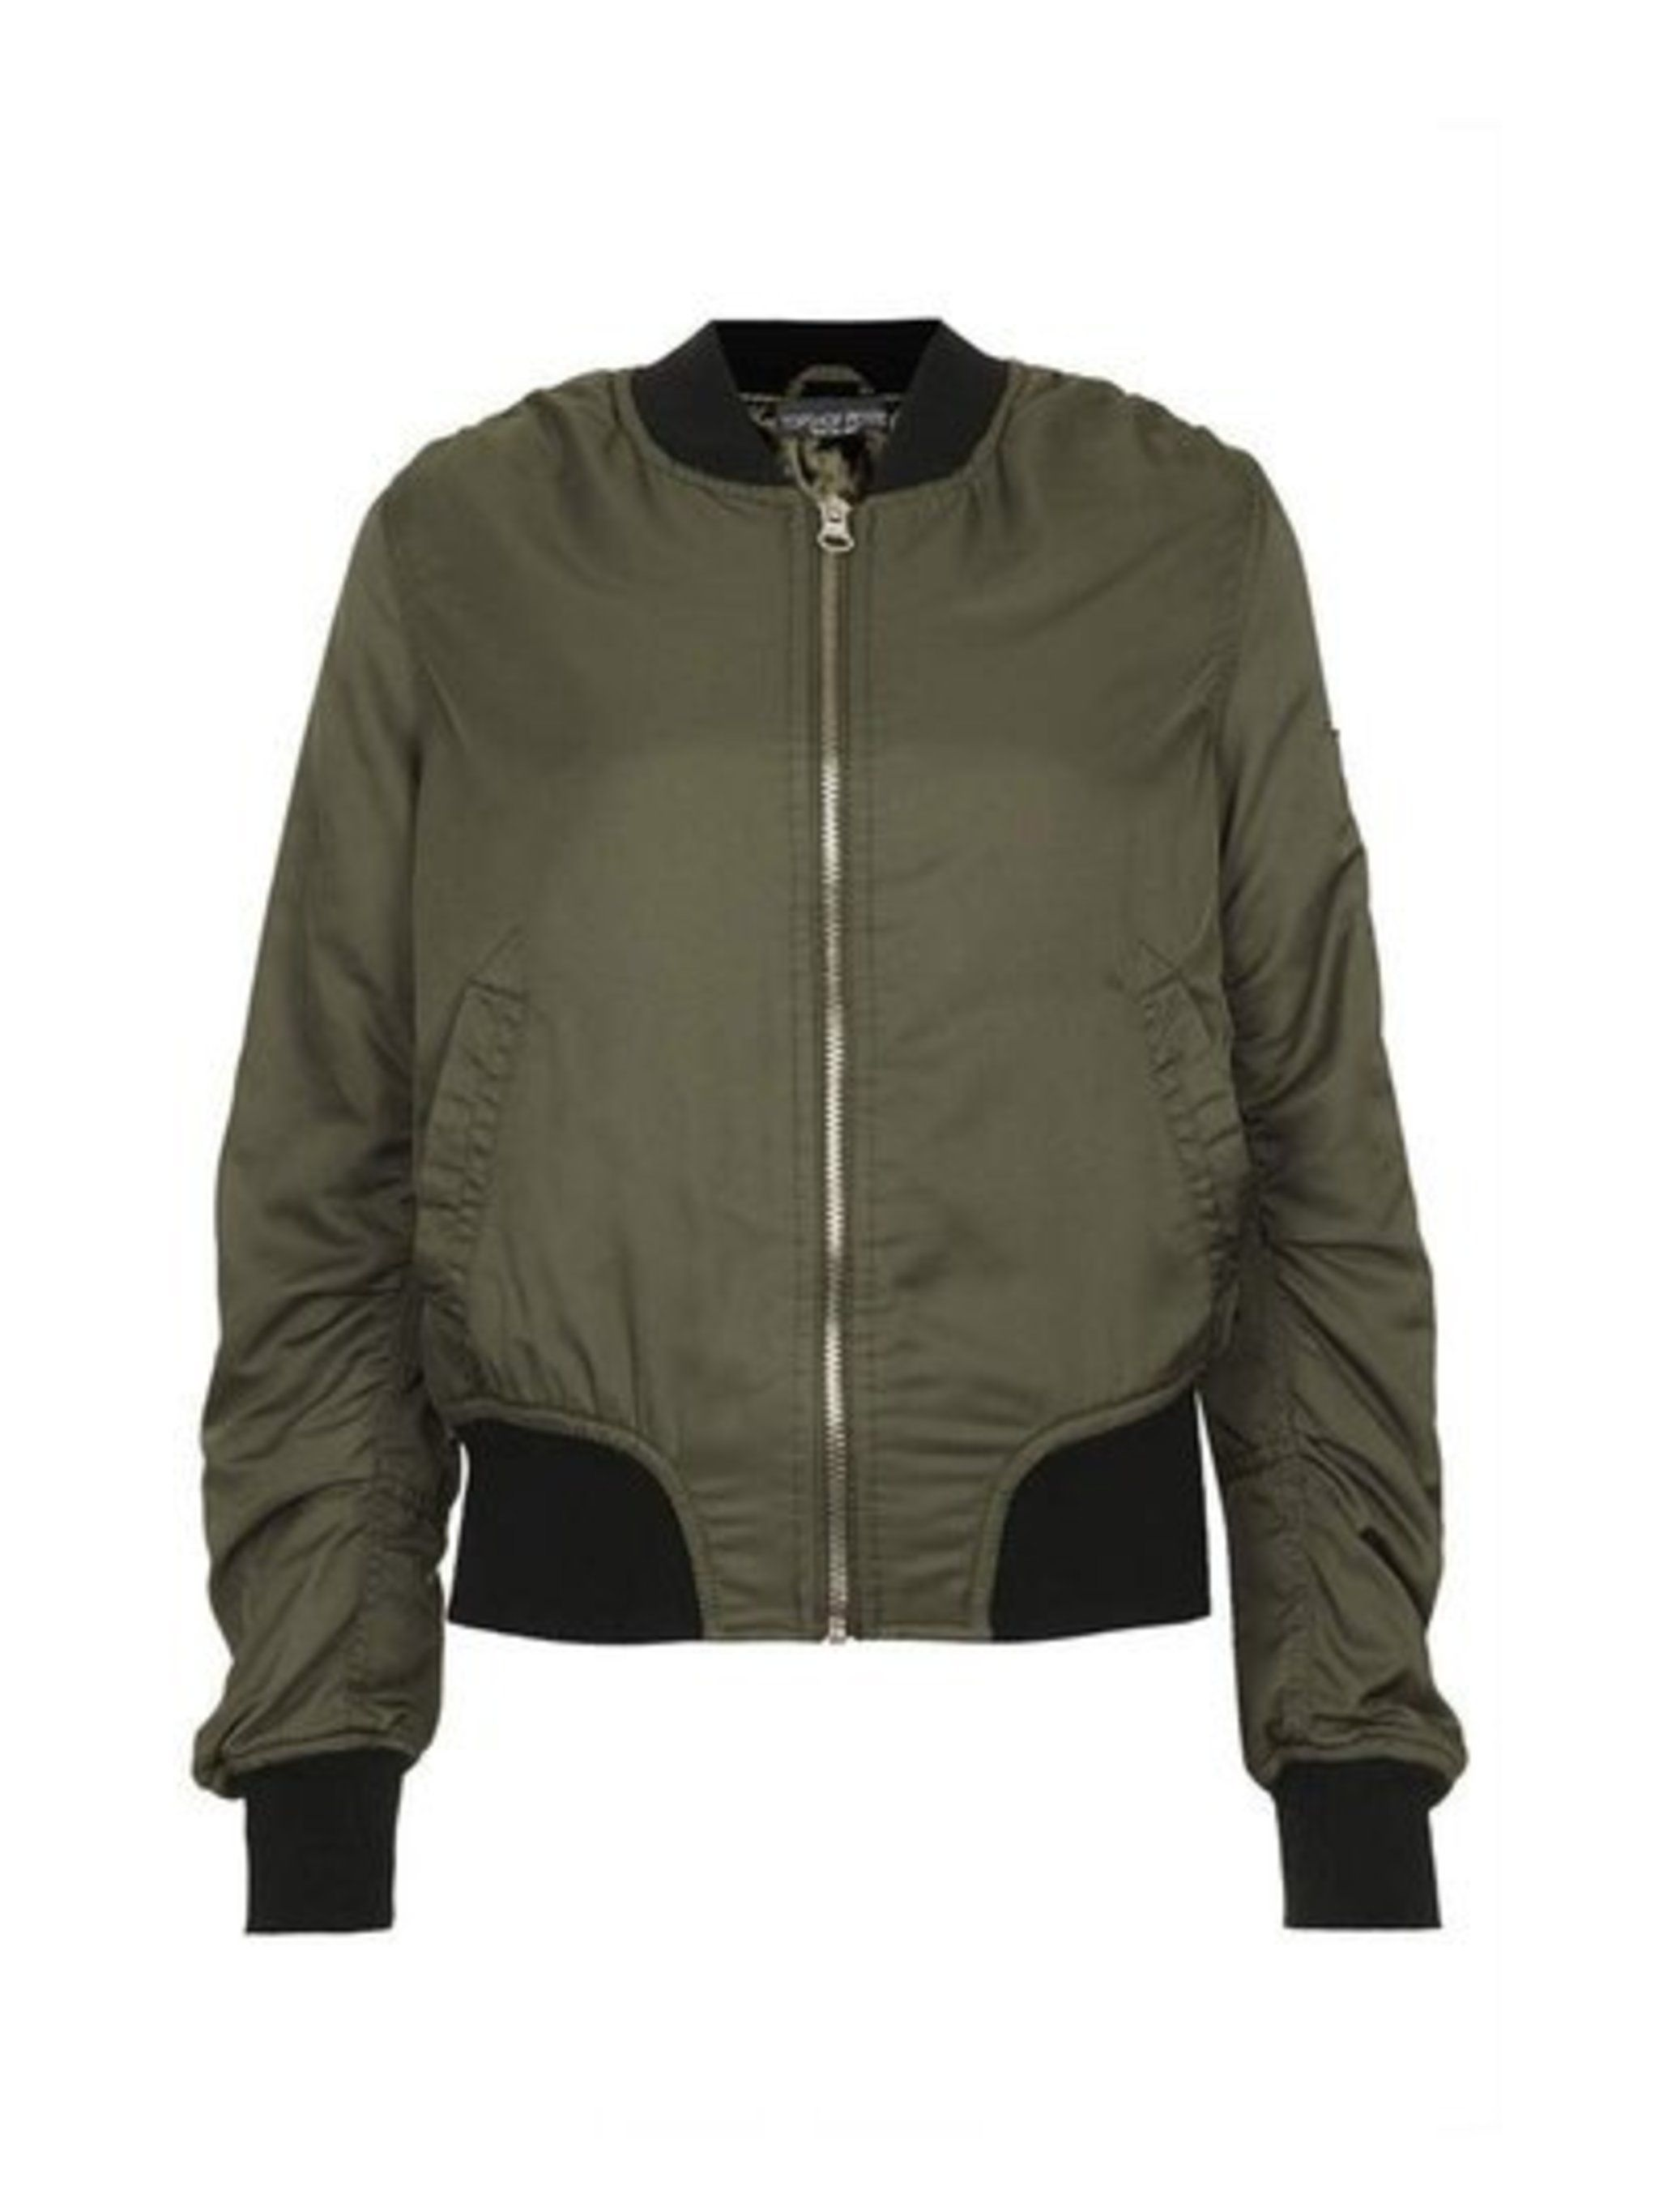 The MA1 flight jacket was spotted on more a/w 2014 catwalks than we could count.  Topshop jacket, £55